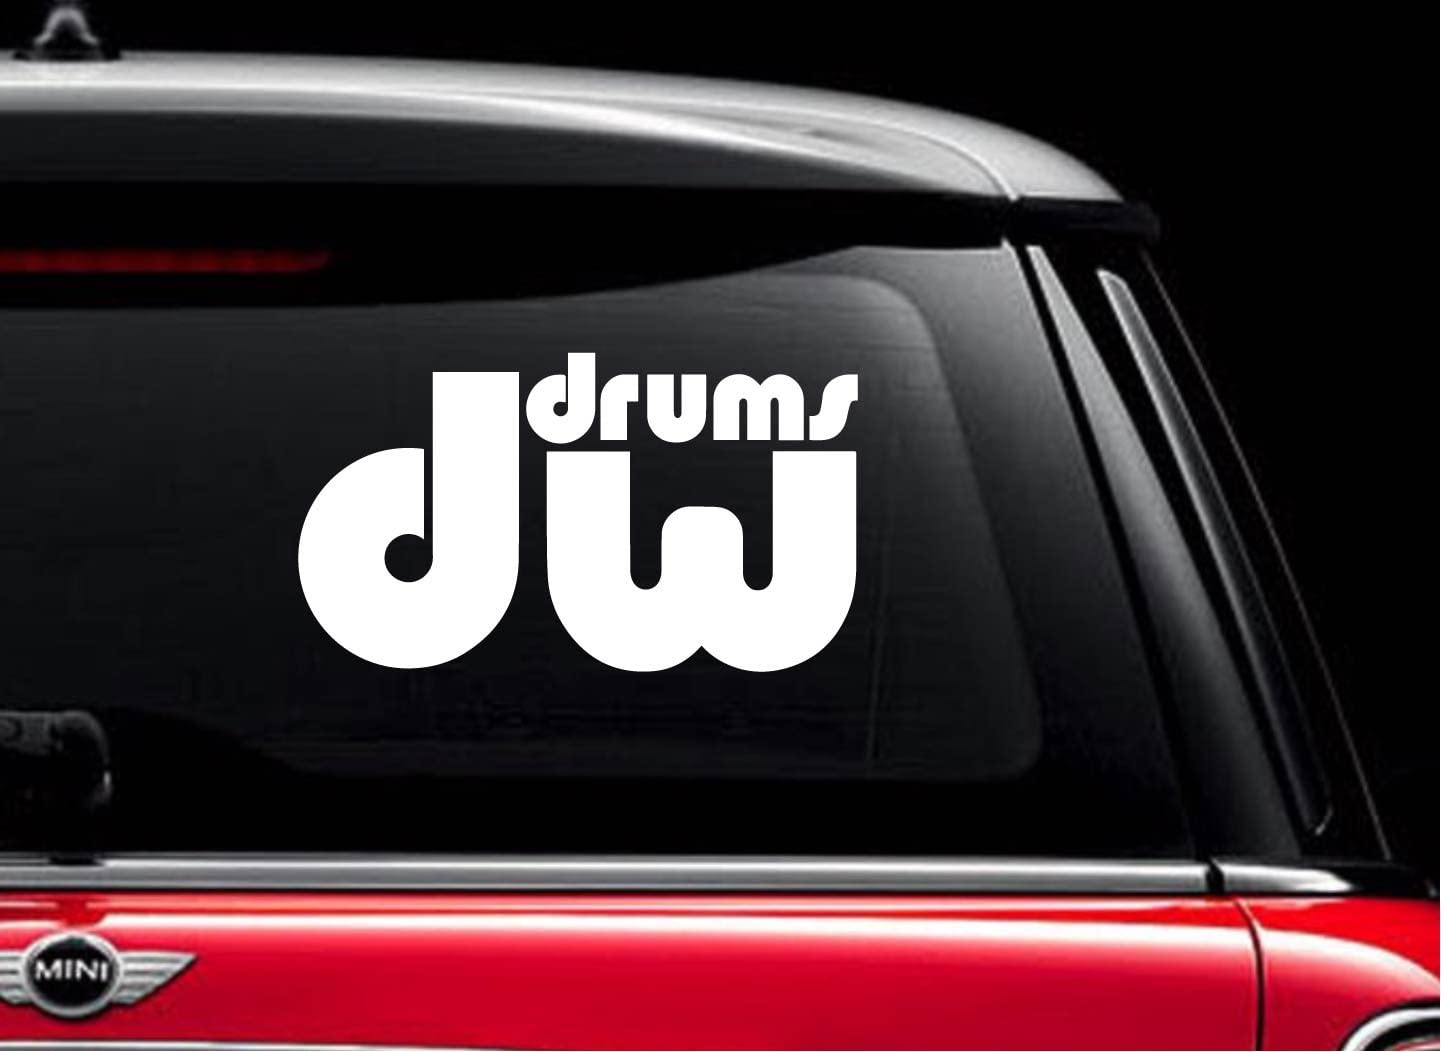 """DW Drums (White 8"""") Vinyl Decal Sticker for Car Automobile Window Wall Laptop Notebook Etc.... Any Smooth Surface Such As Windows Bumpers"""